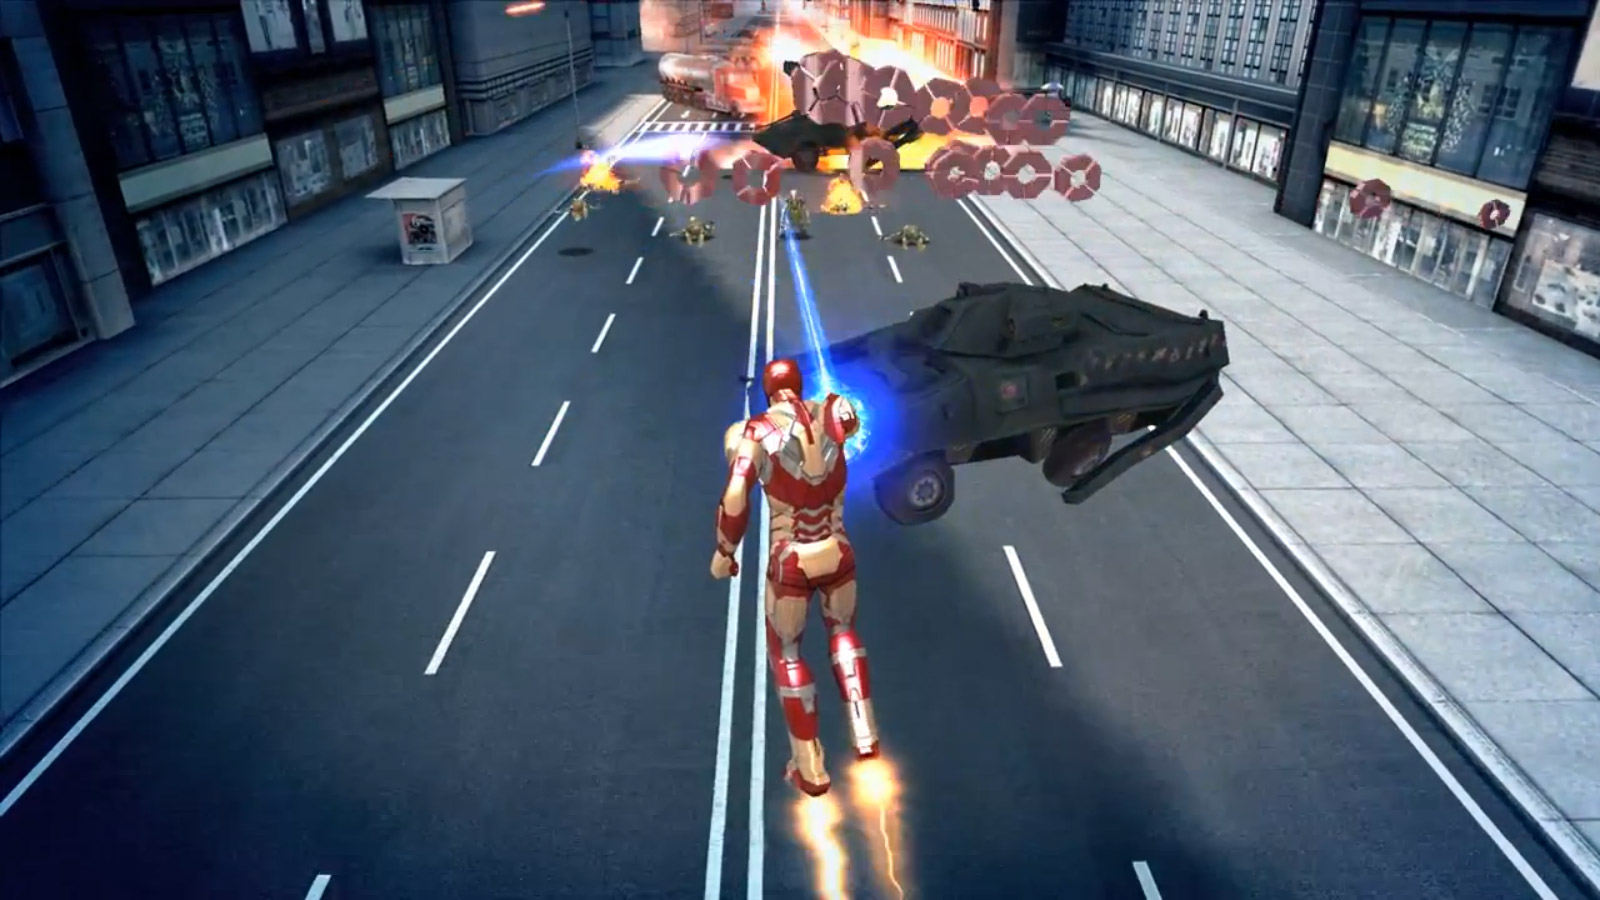 Download  TOP  Film Iron Man 3 Ganool iron-man-3-an-endless-flying-game-will-hit-android-2